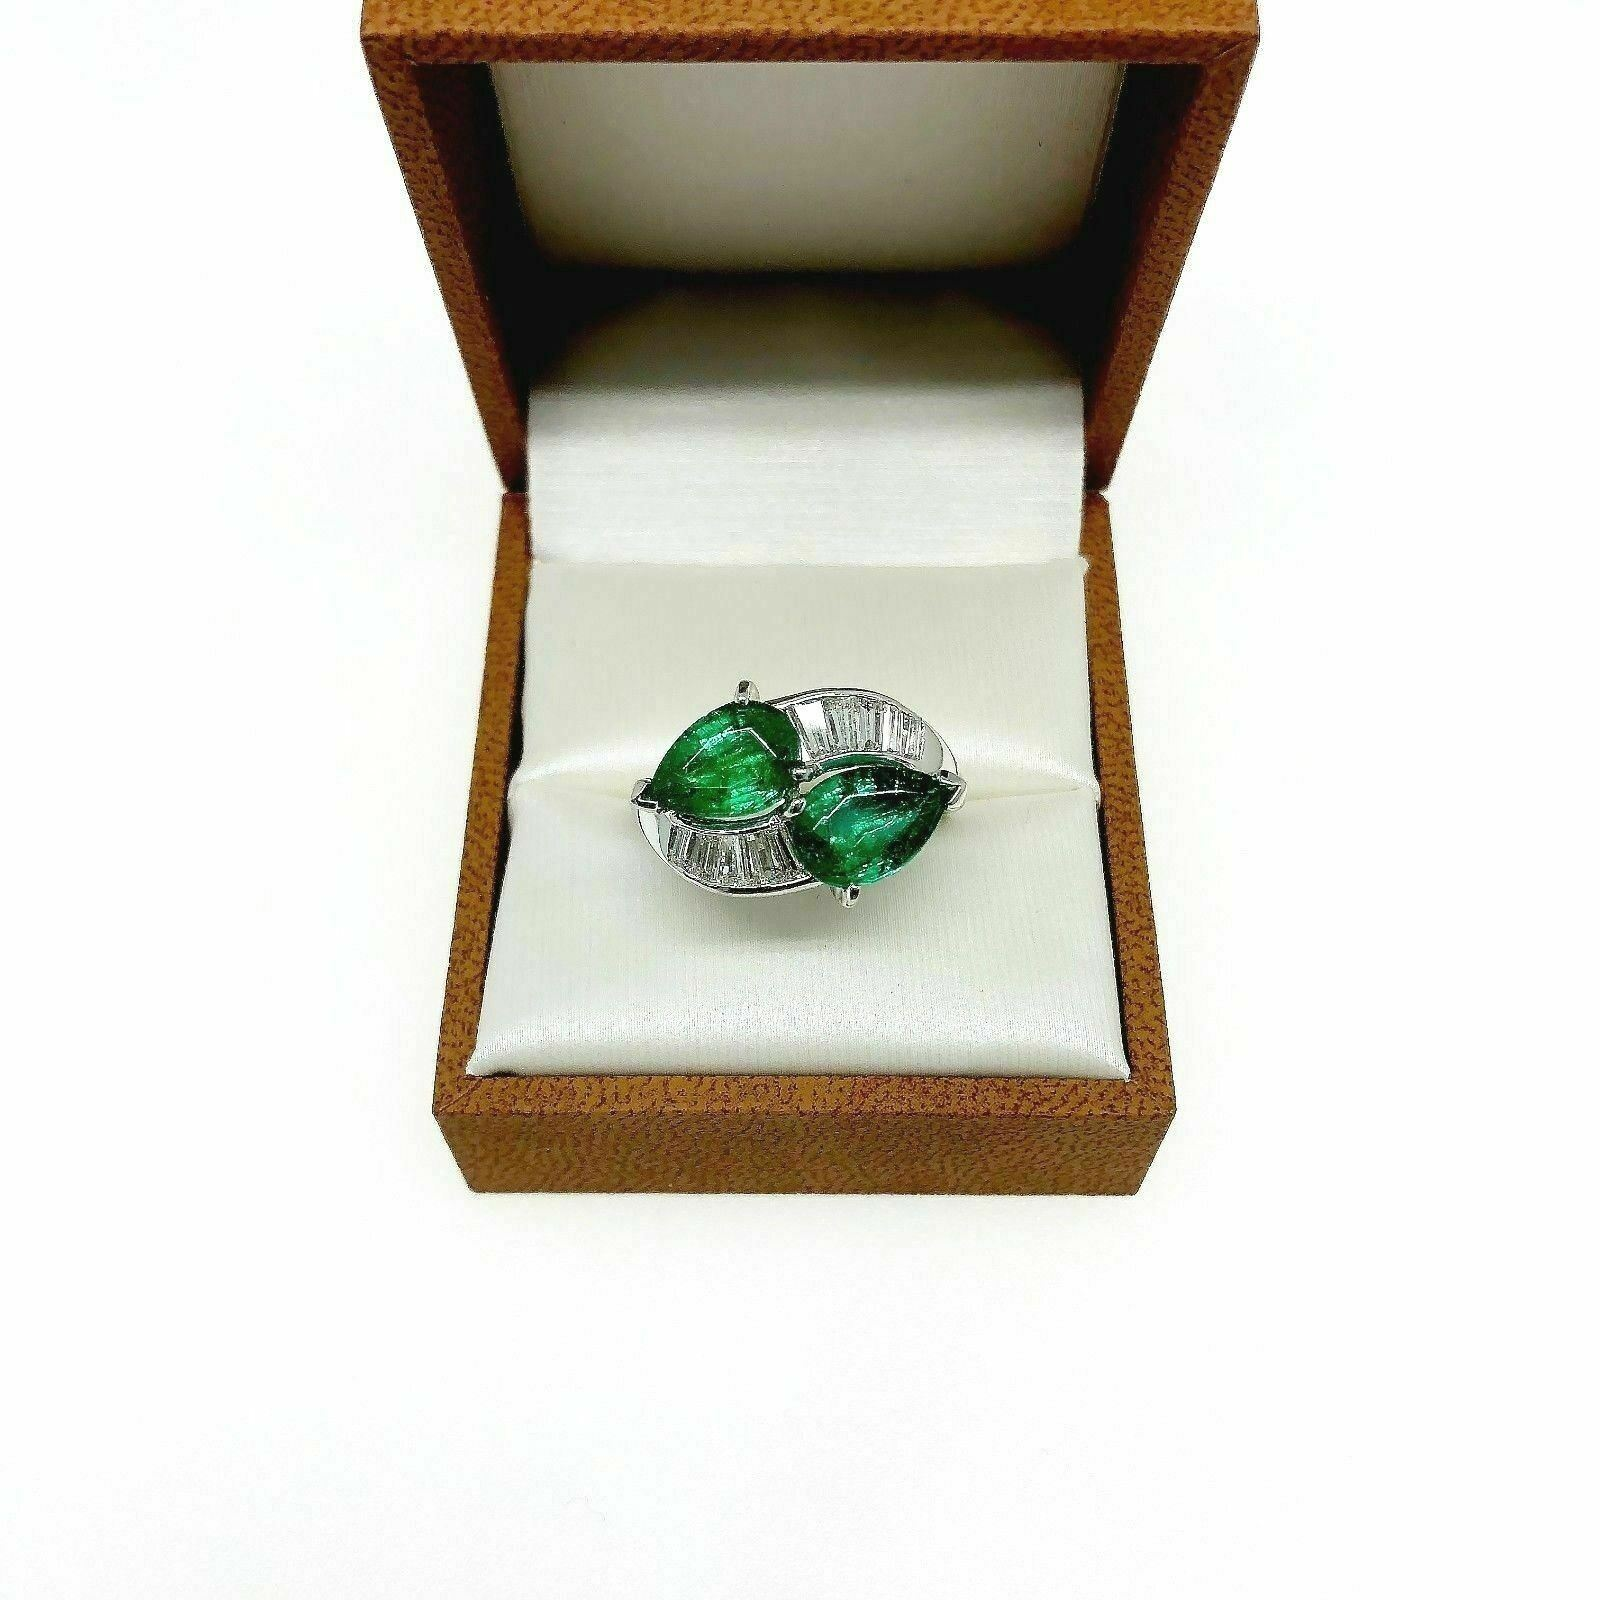 3.99 Carats t.w. Diamond and Emerald Ring Bypass Celebration Ring Platinum